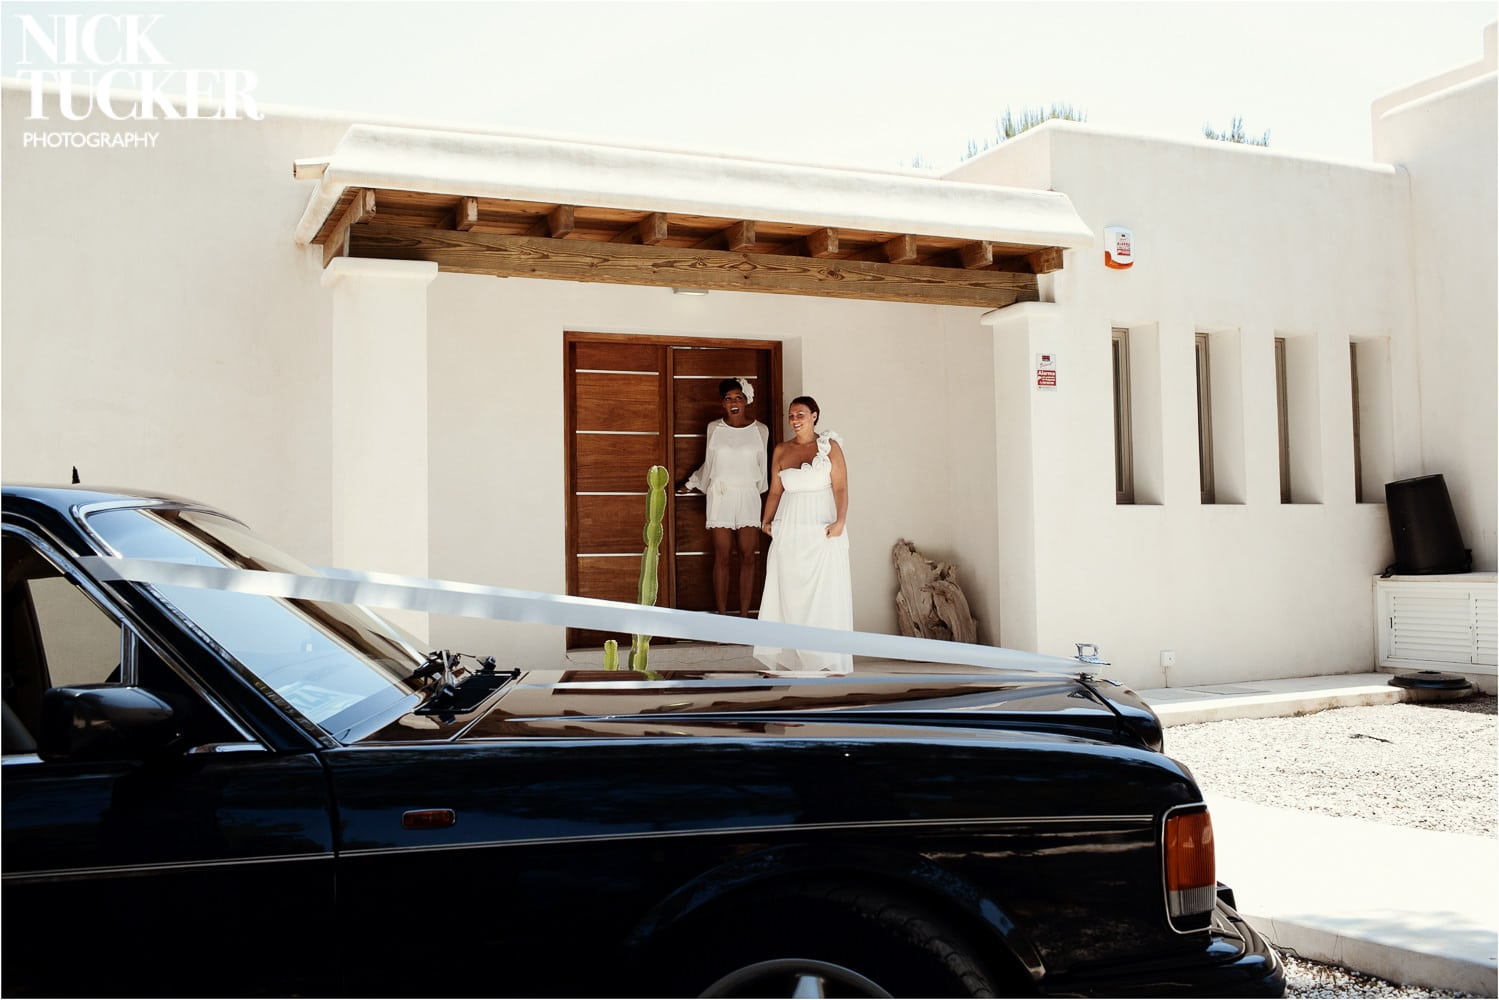 brides seeing their wedding car for the first time